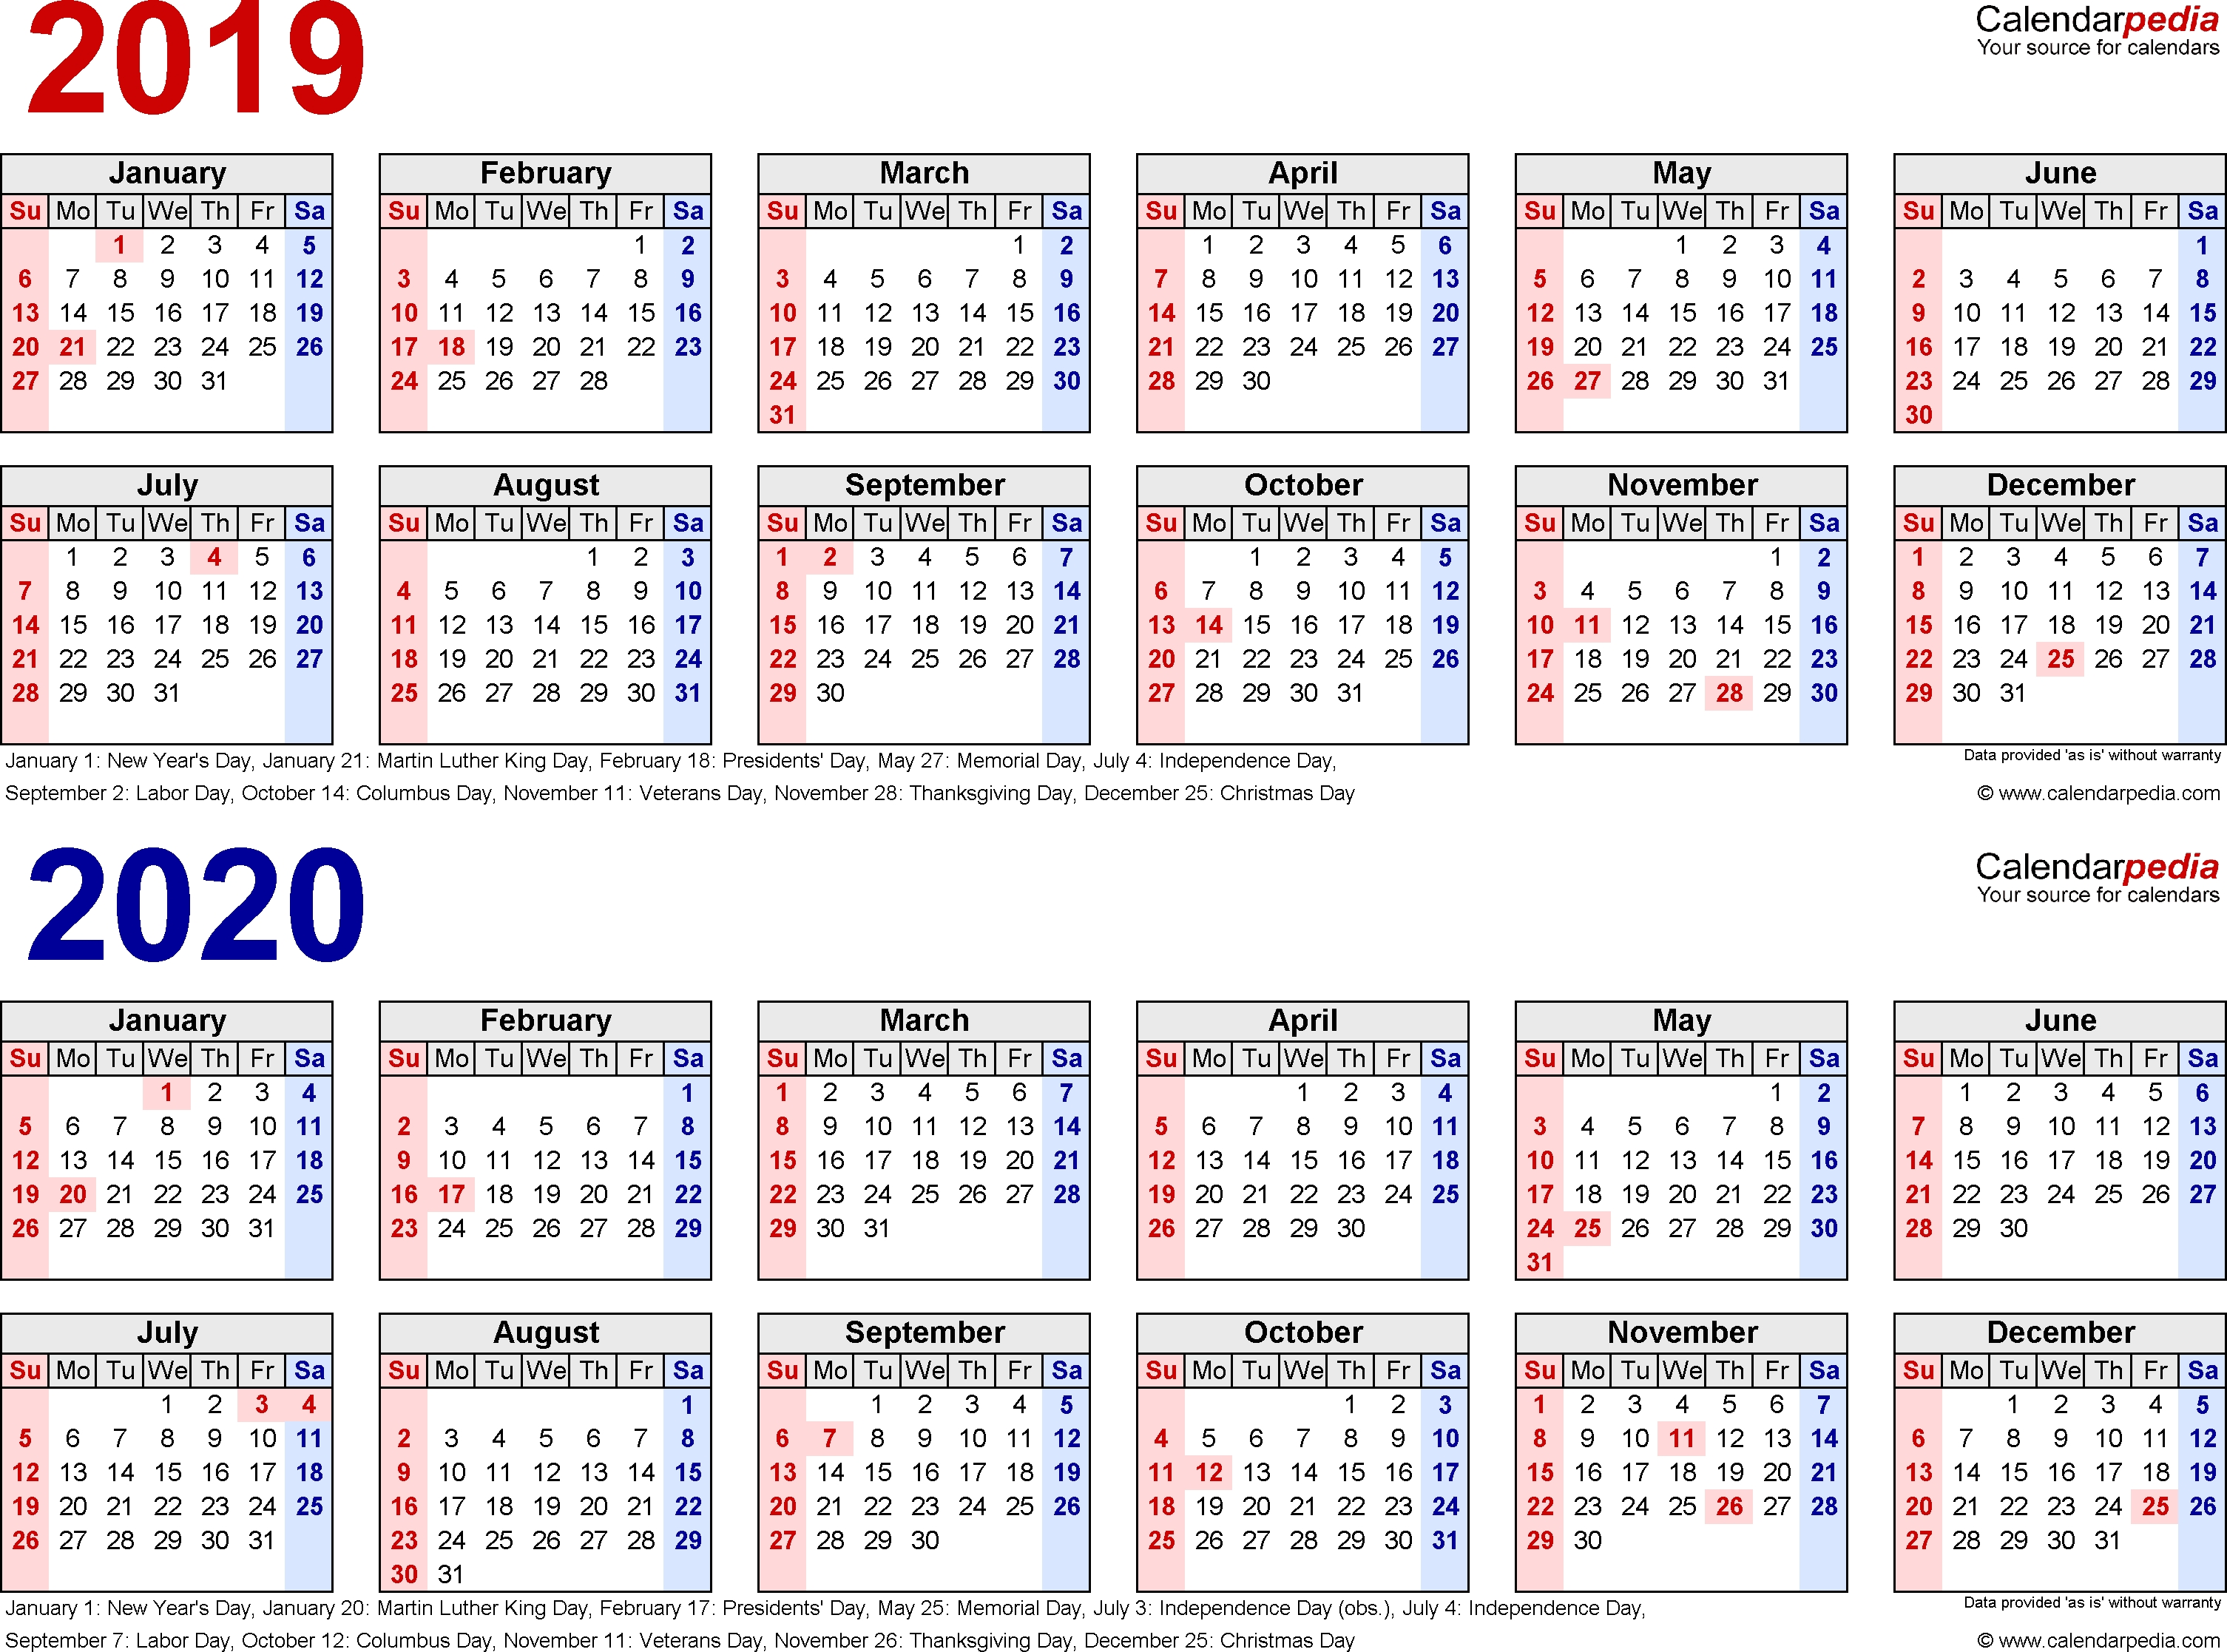 2019-2020 Calendar - Free Printable Two-Year Pdf Calendars intended for Calendar July 2019 To June 2020 Free